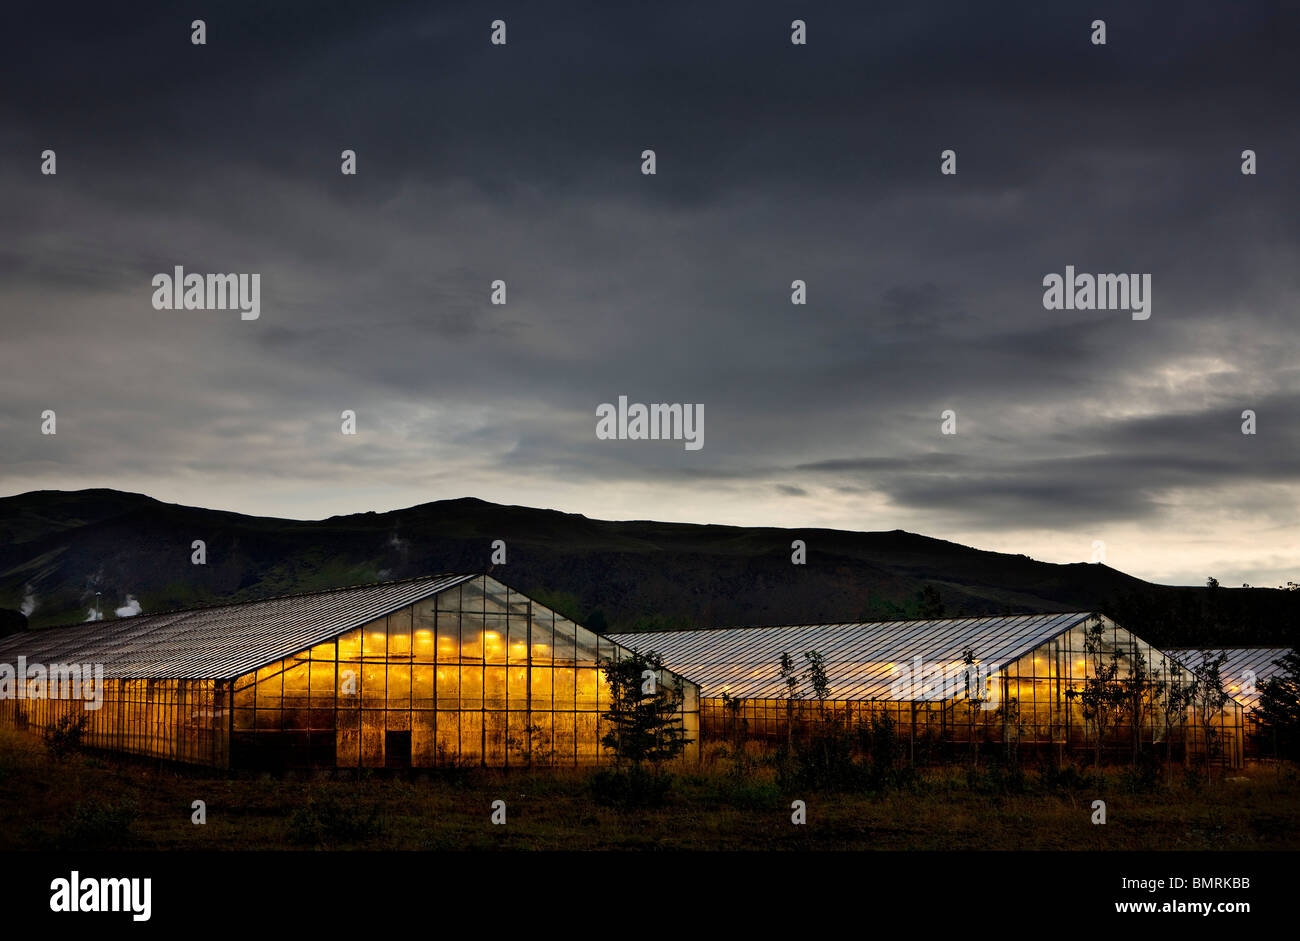 The people in Hveragerði Iceland use geothermal energy  for heating their greenhouses. - Stock Image